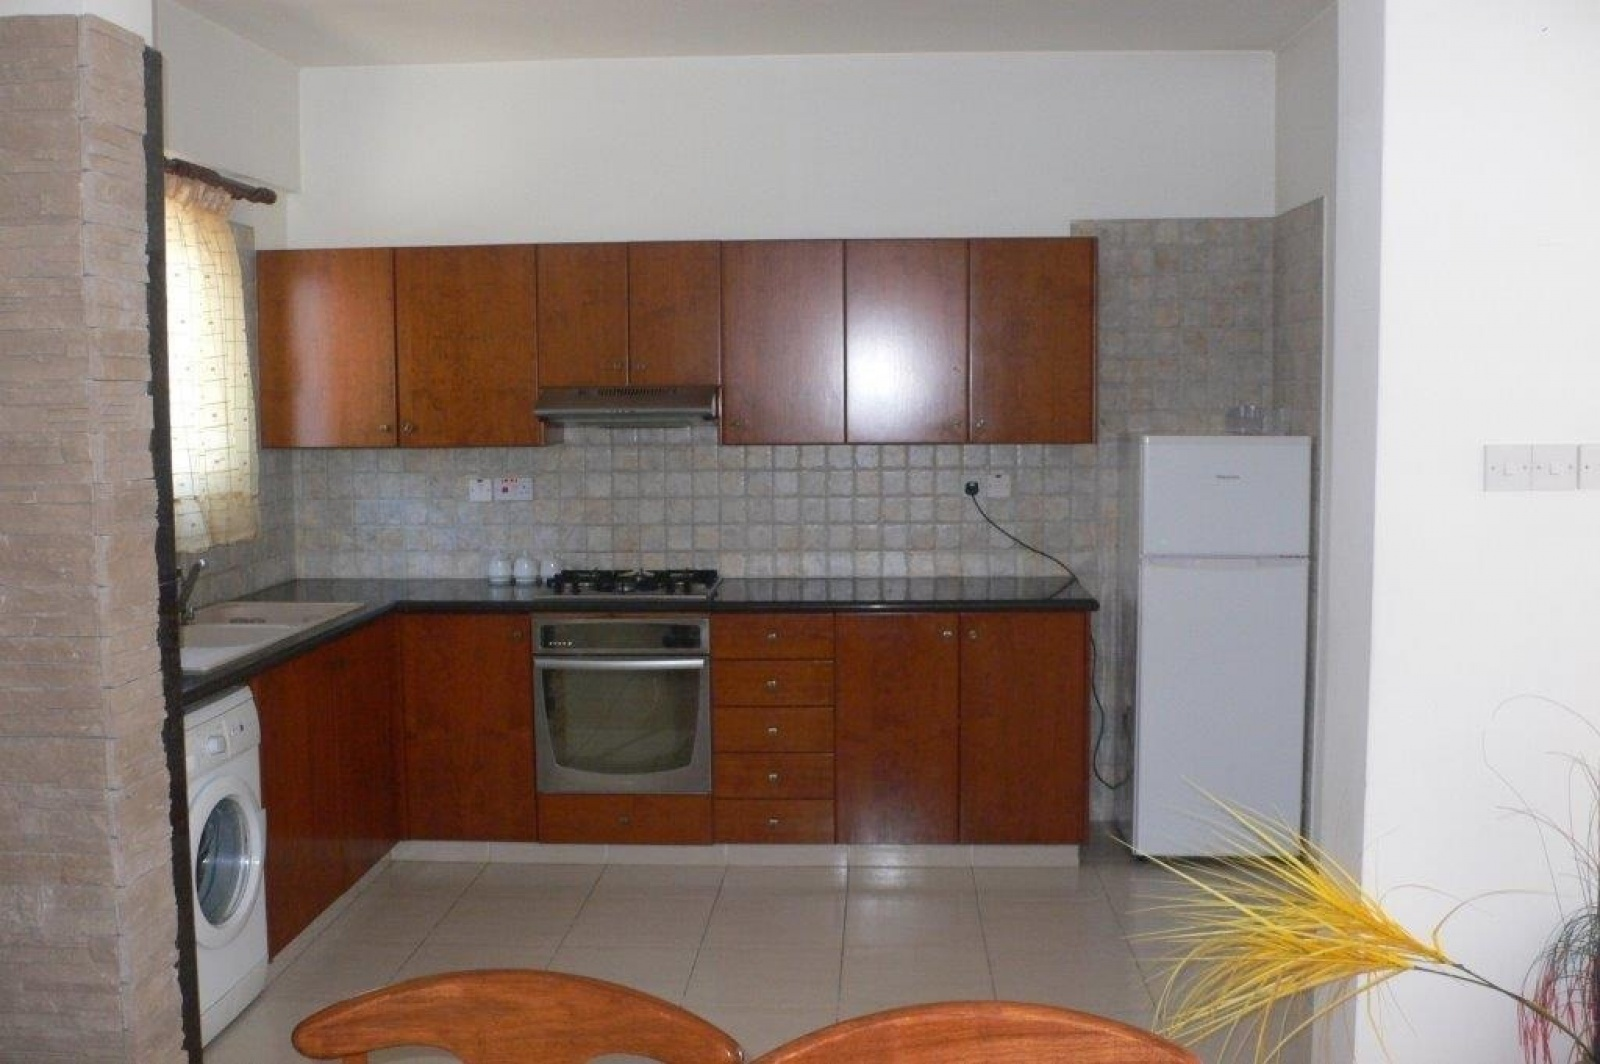 Residential Town House - Prodromi Town House for Sale